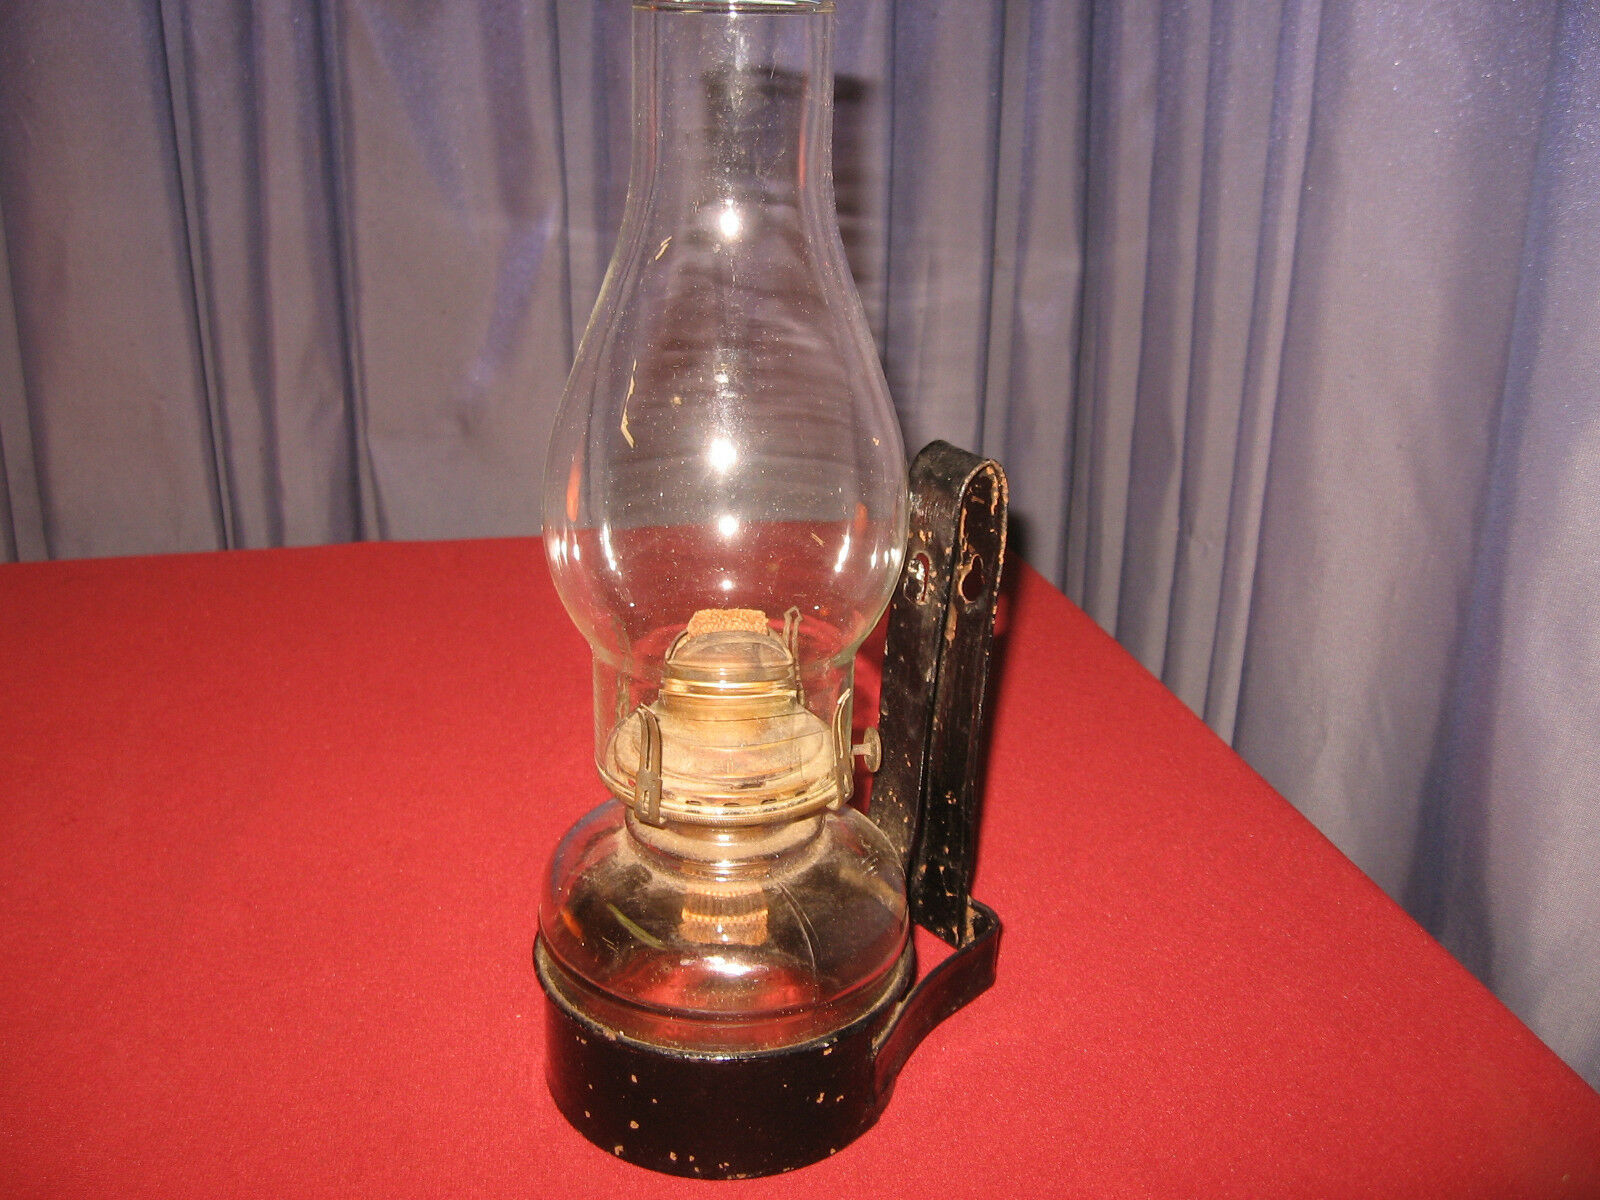 Wall Kerosene Lamps : Antique Wall Mount Lantern Vintage Primitive Kerosene Oil Barn Lamp Chimney USD 30.00 - PicClick